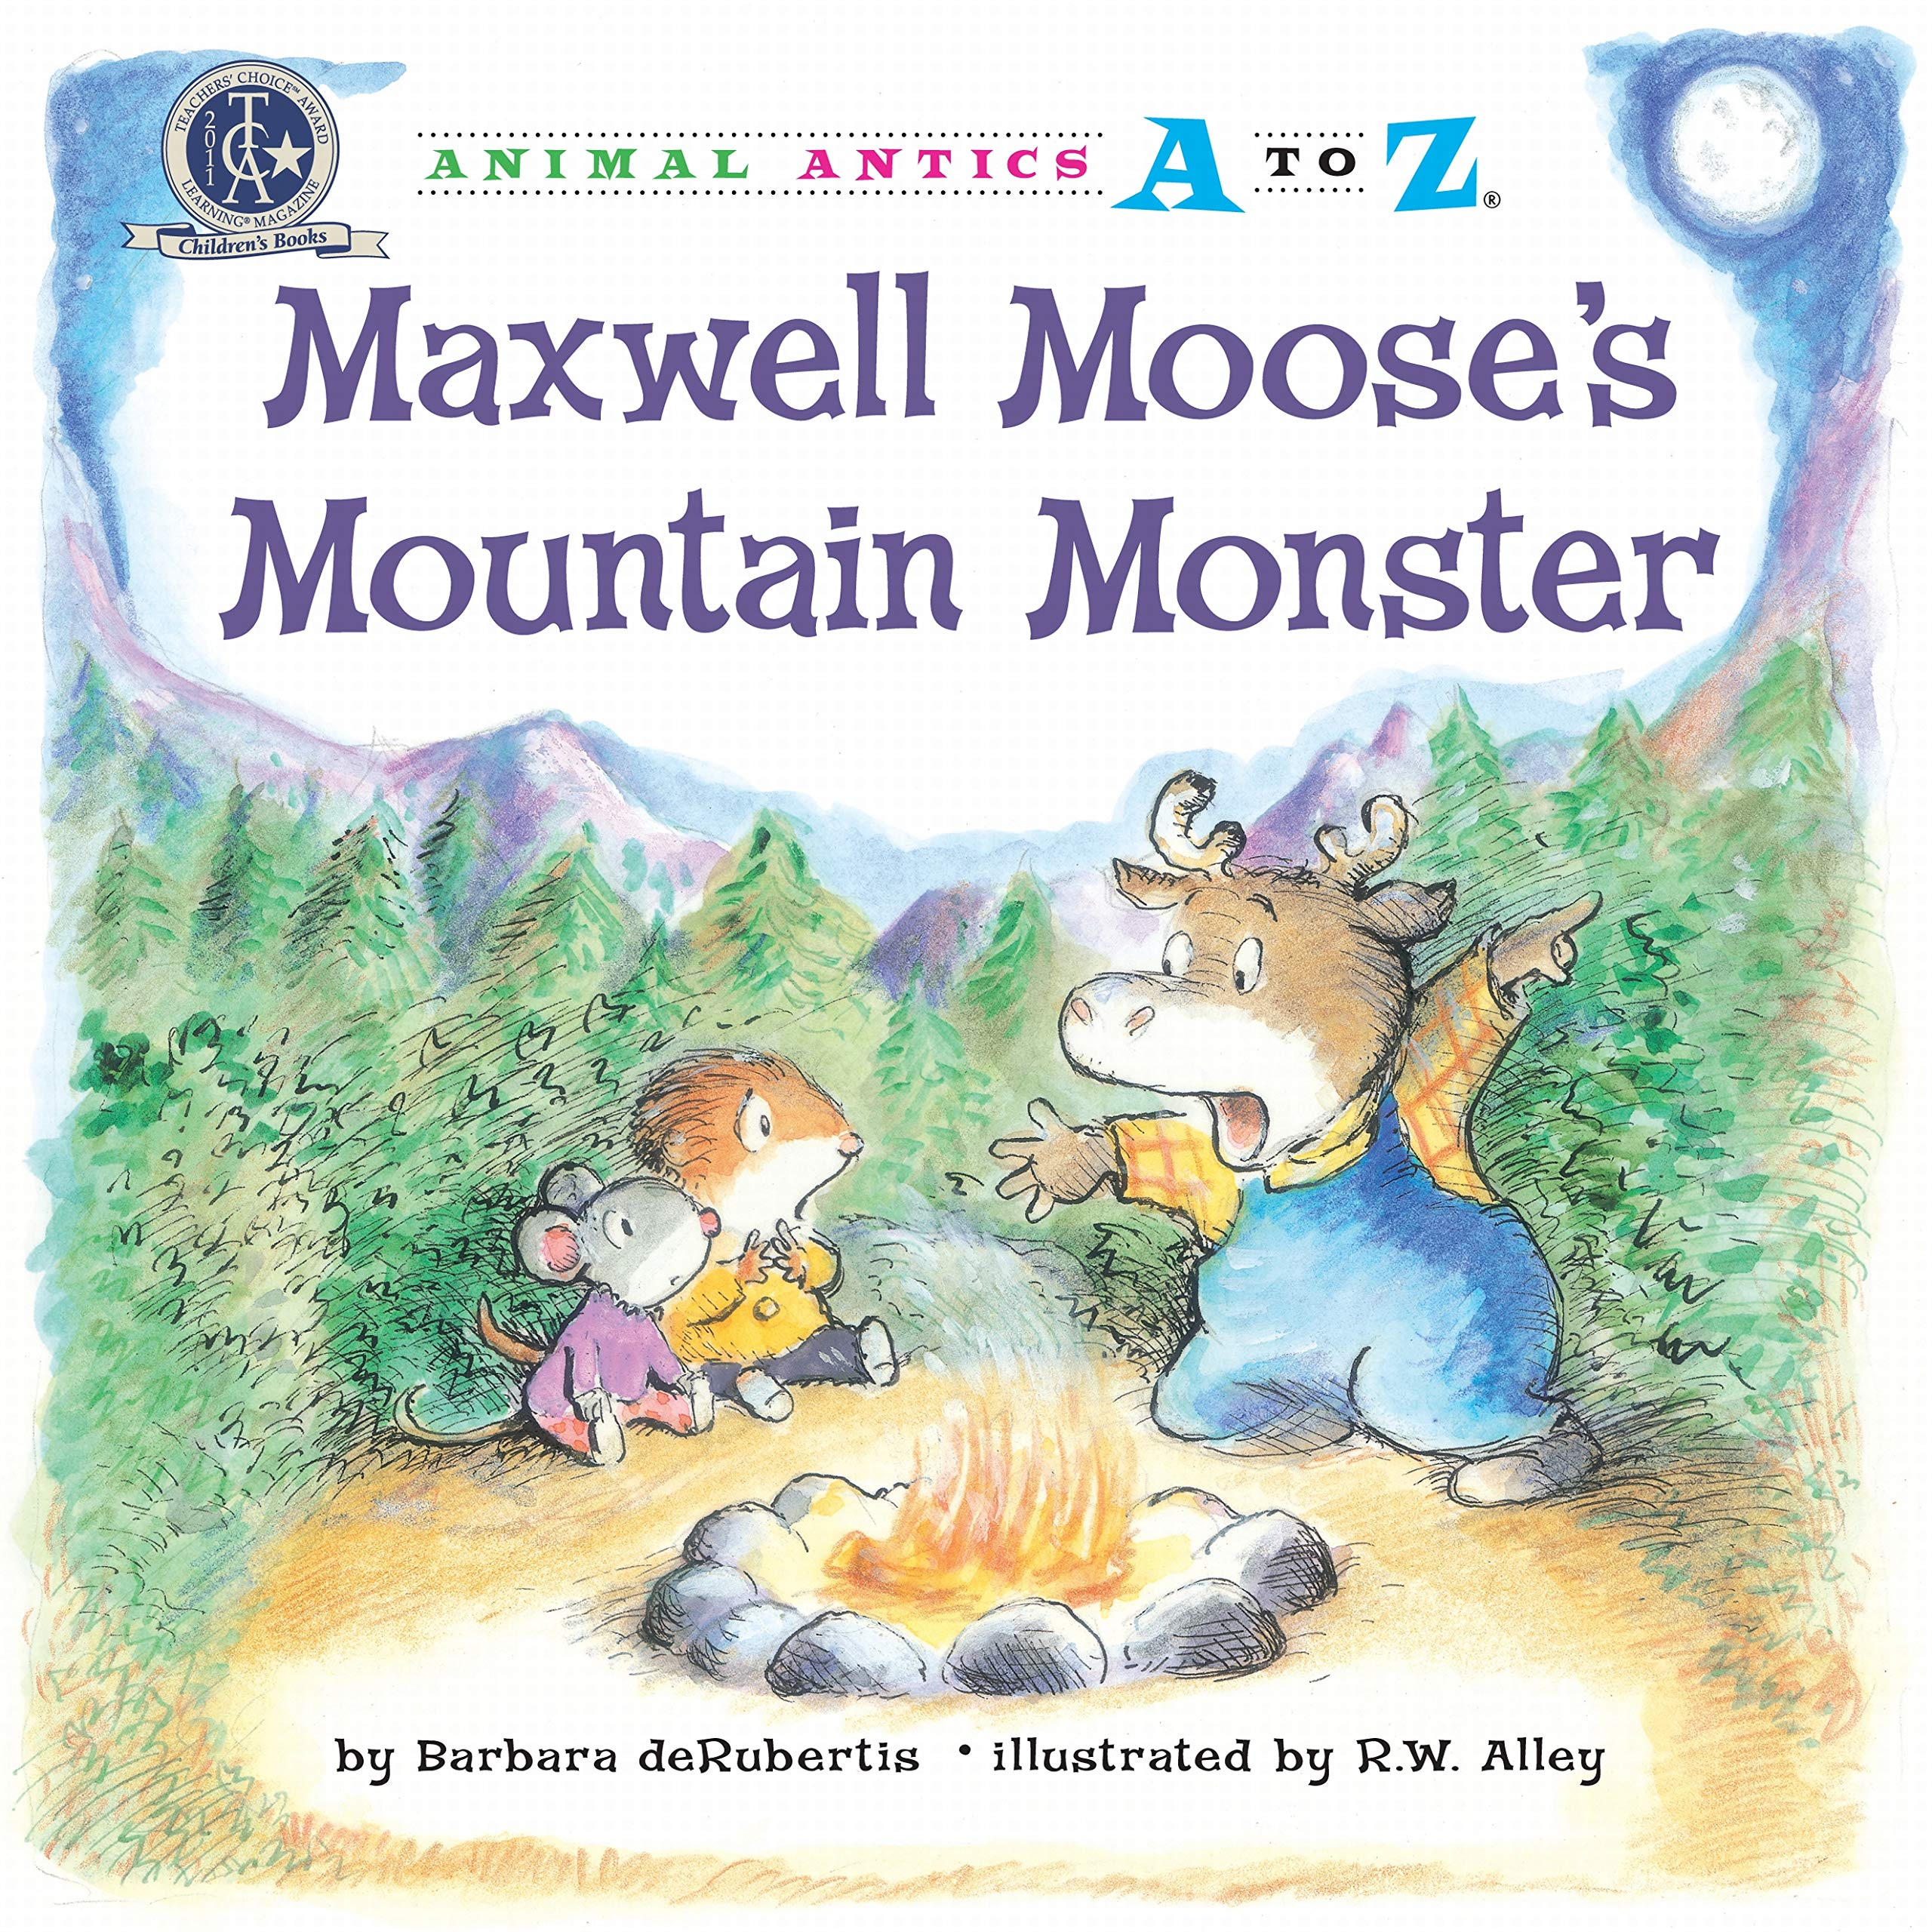 Maxwell Moose's Mountain Monster (Animal Antics A to Z) ebook